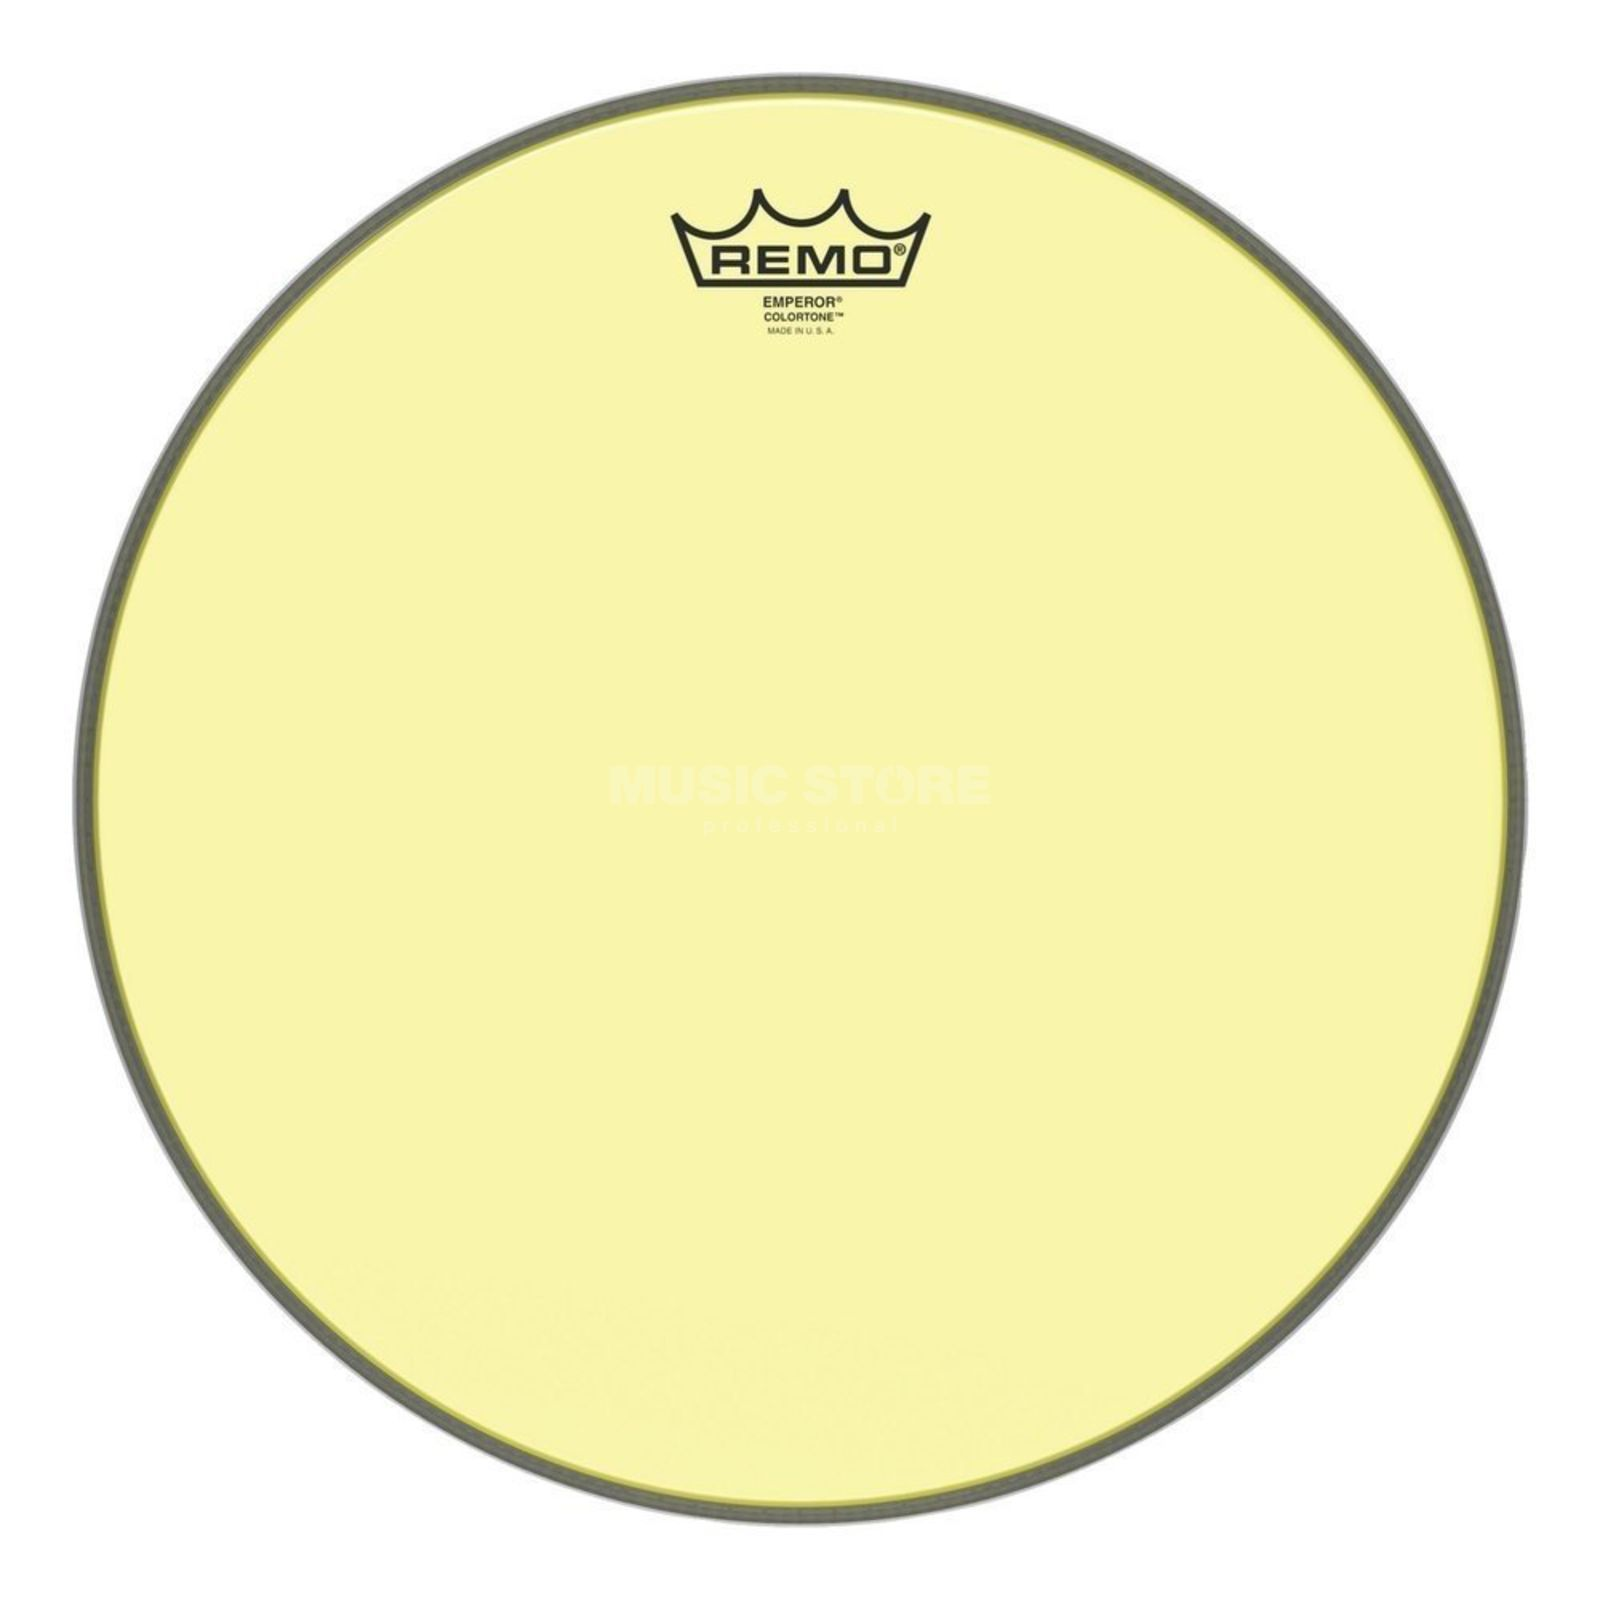 "Remo Emperor Colortone Yellow 10"" Product Image"